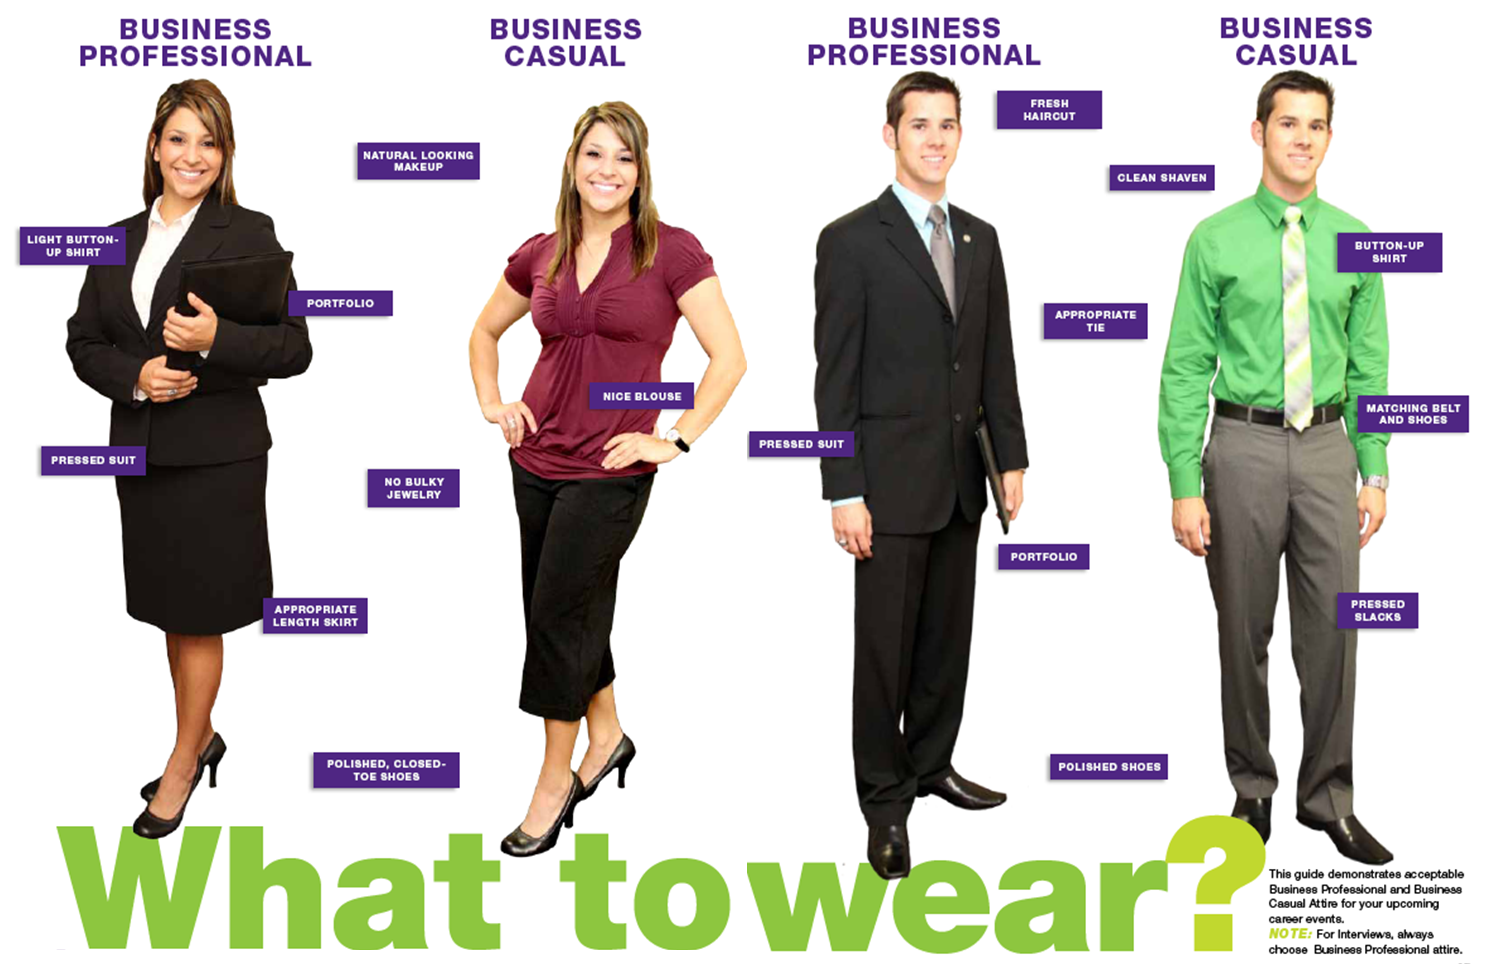 whattowear - What To Wear To An Interview What Not To Wear For An Interview